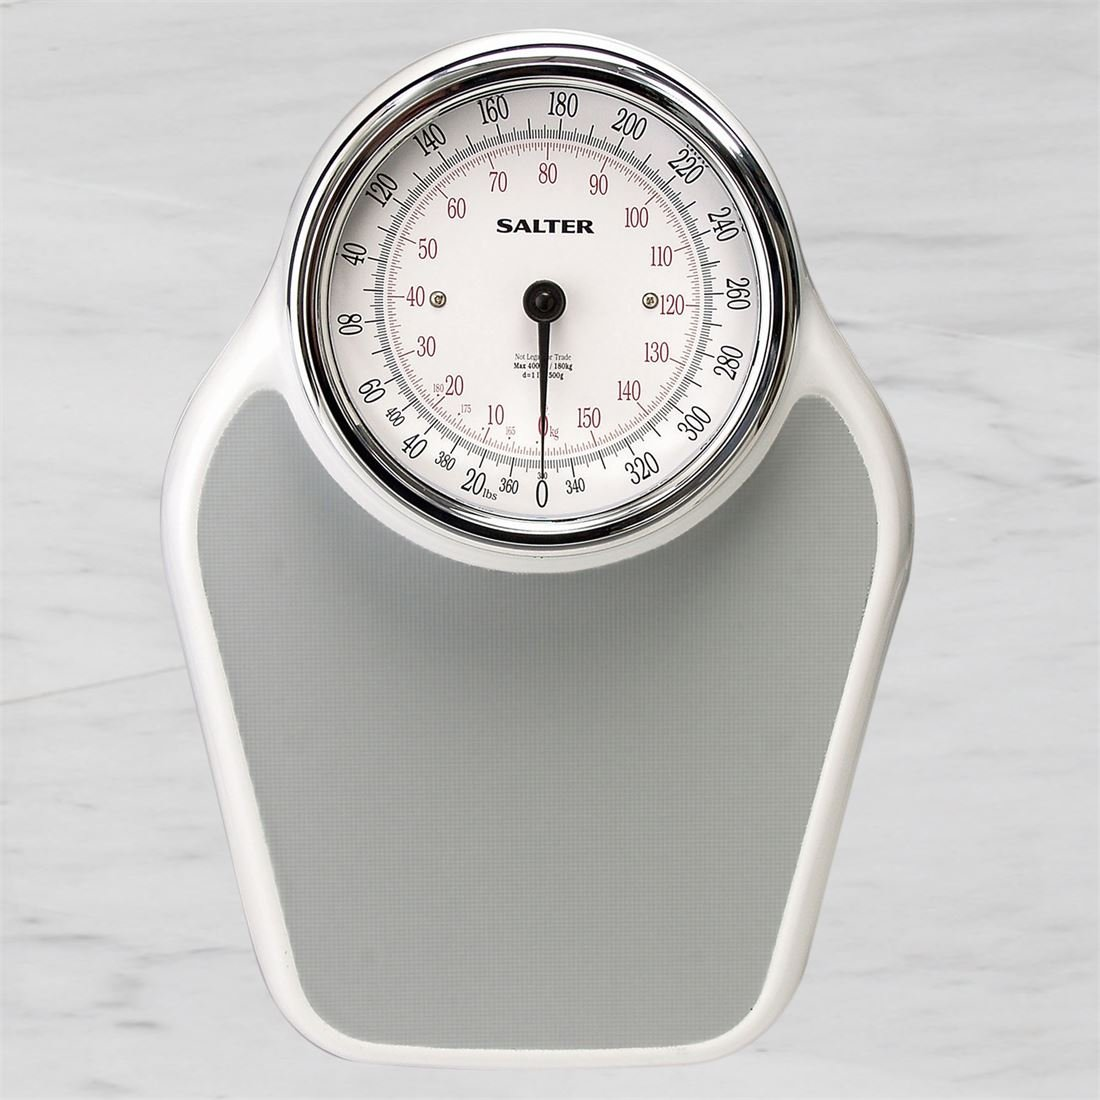 BrylaneHome Doctor's High Capacity Bathroom Scale - Up To 400 Pounds (Silver)